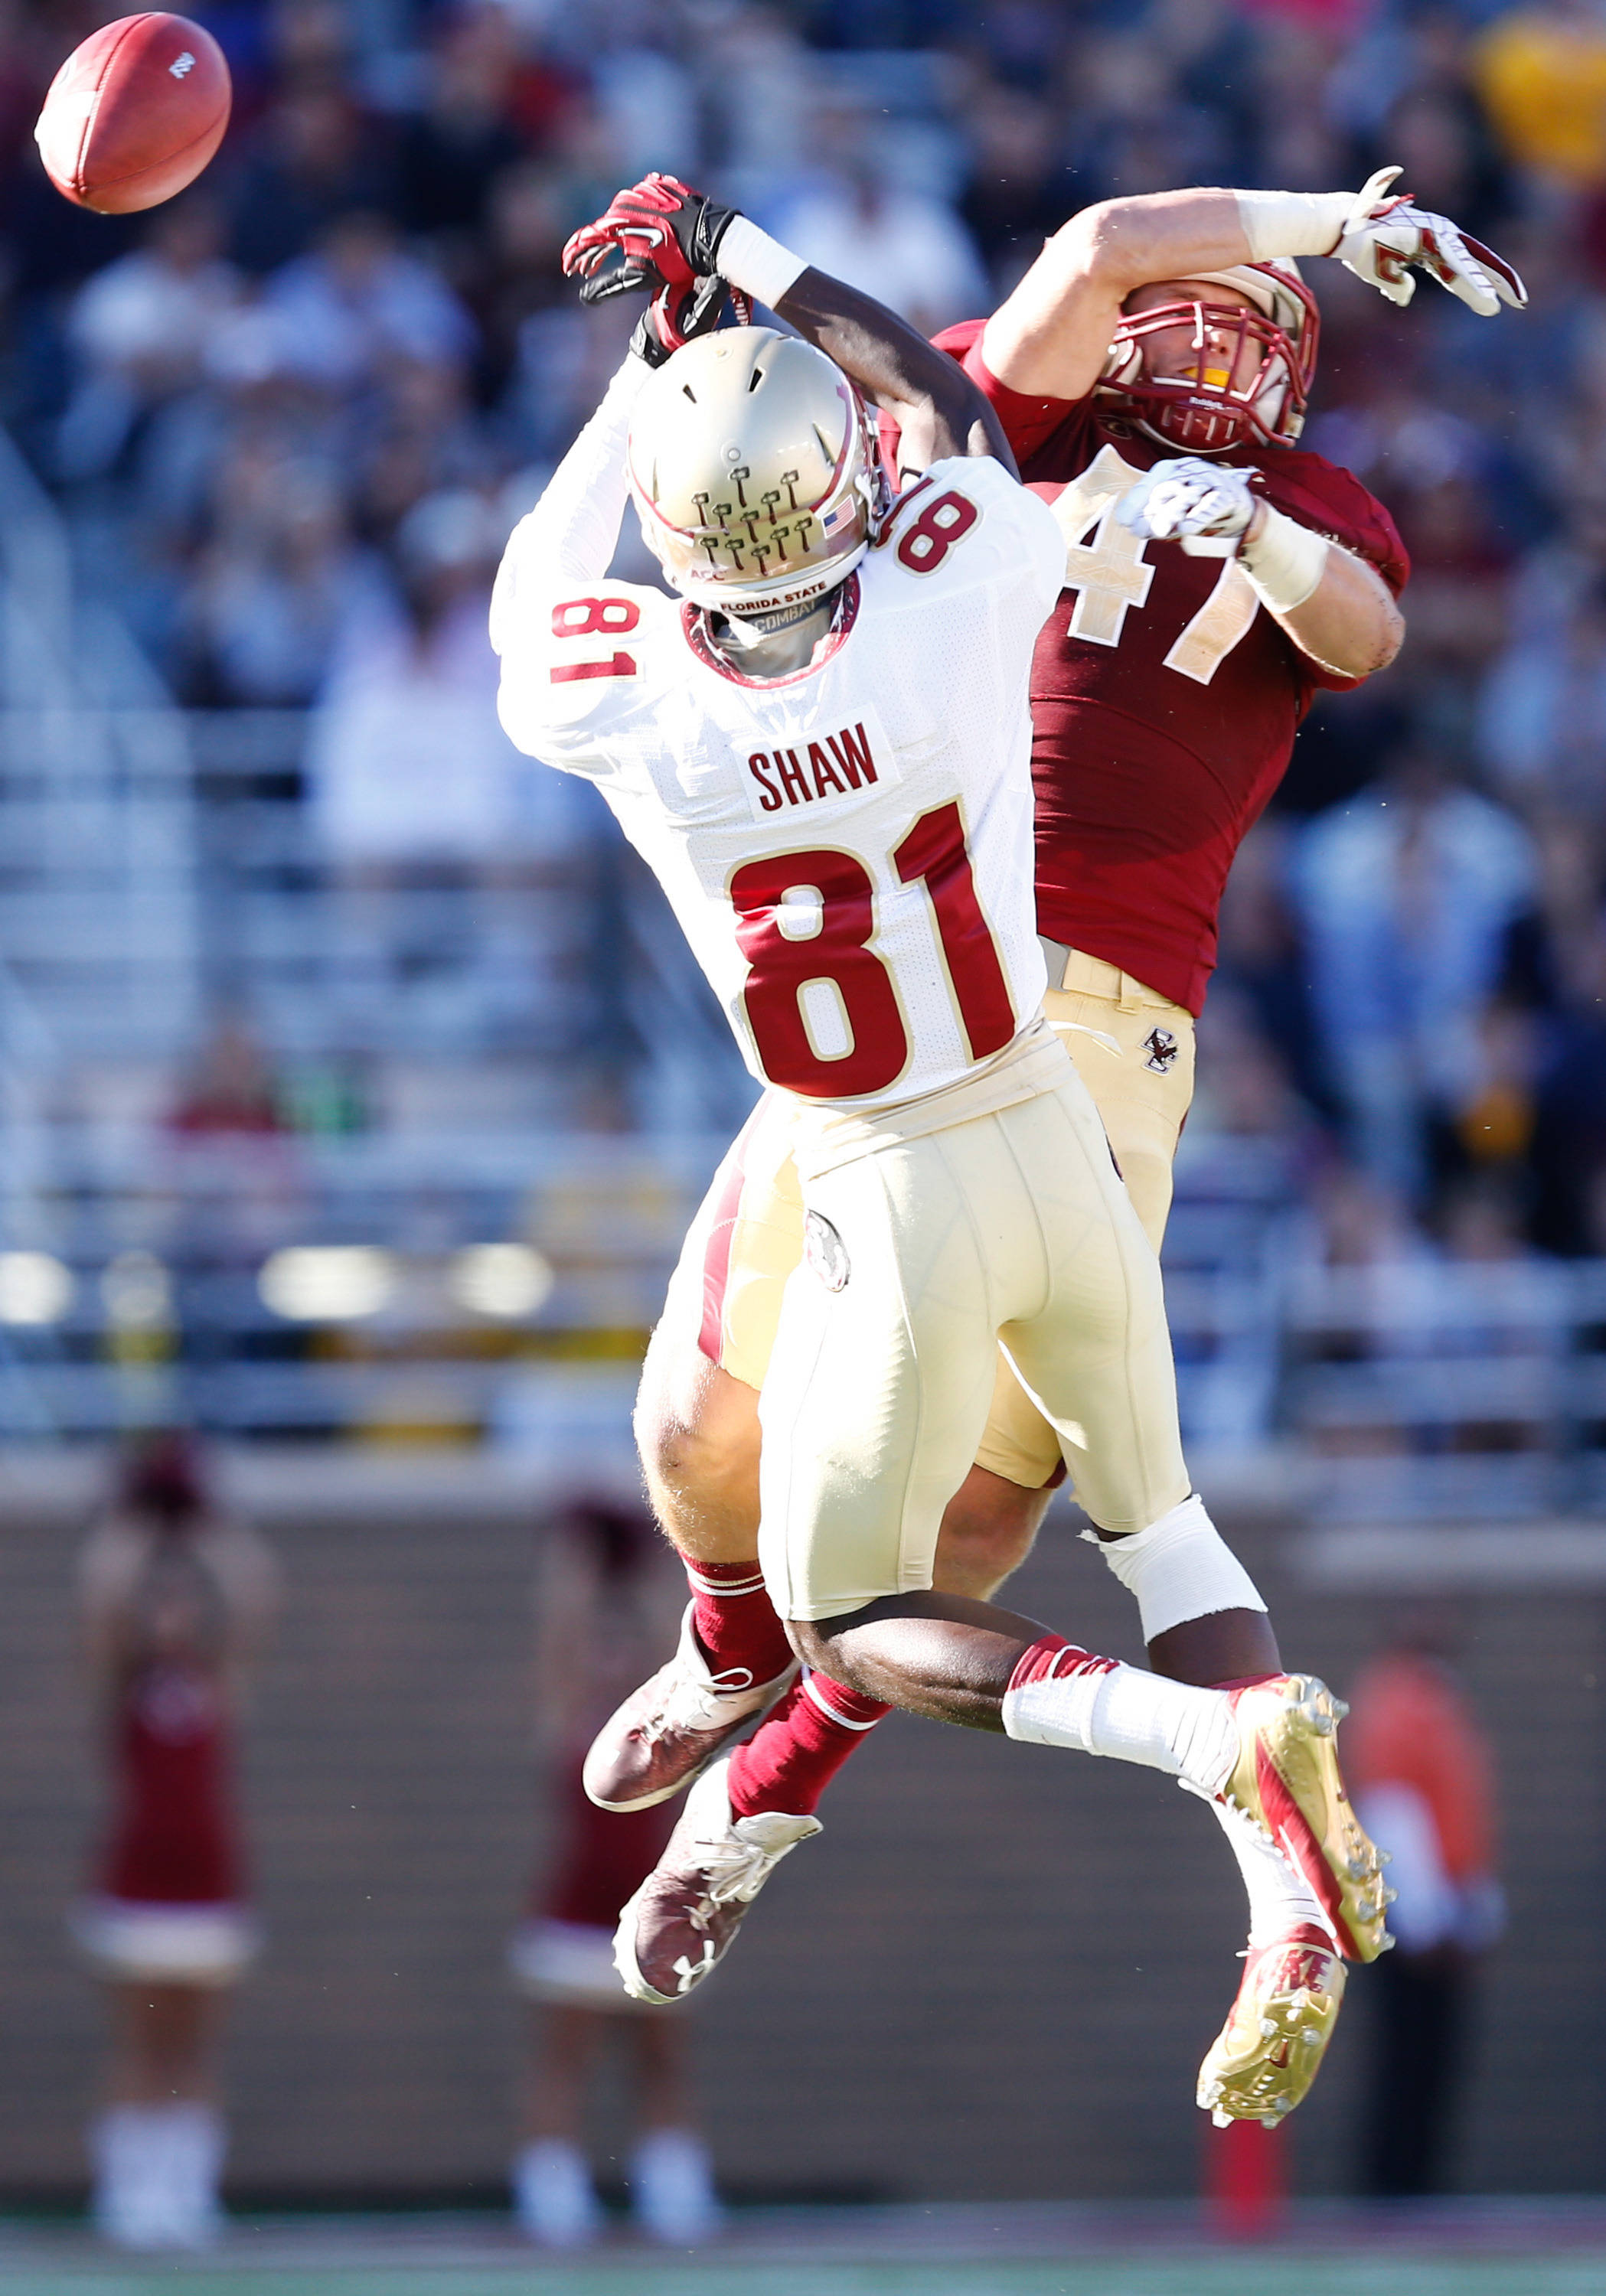 Sep 28, 2013; Boston, MA, USA; Boston College Eagles defensive back Spenser Rositano (47) knocks the ball away from Florida State Seminoles wide receiver Kenny Shaw (81) during the first half at Alumni Stadium. Mandatory Credit: Mark L. Baer-USA TODAY Sports